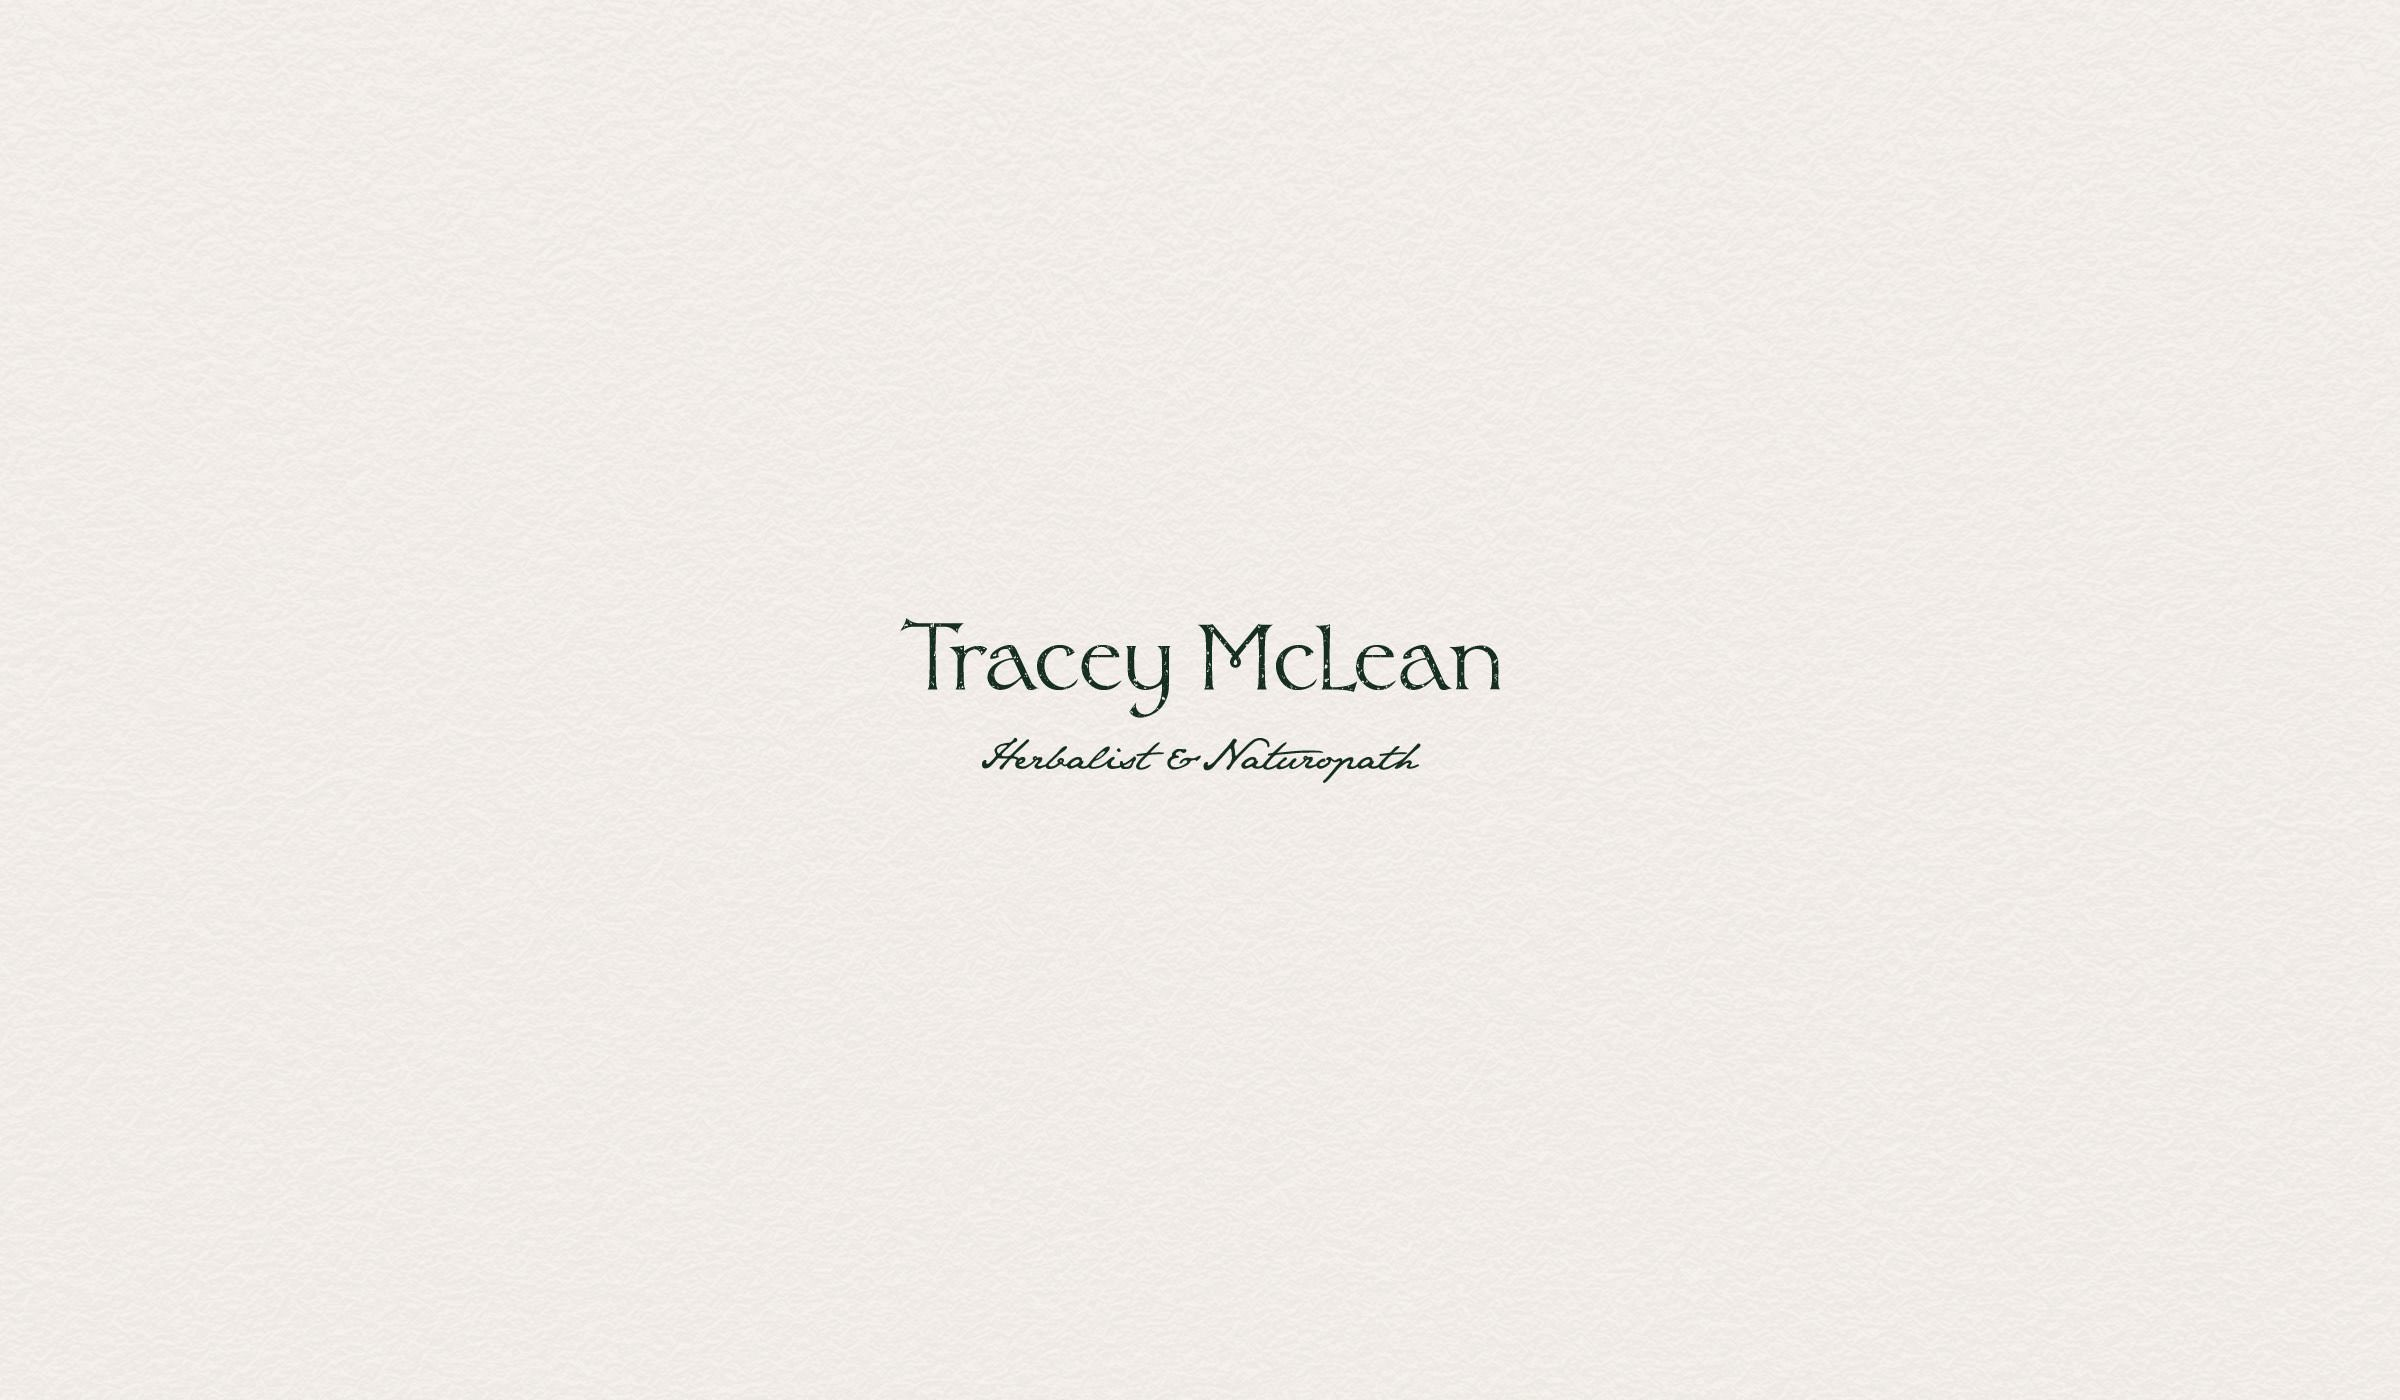 Tracey McLean text logo